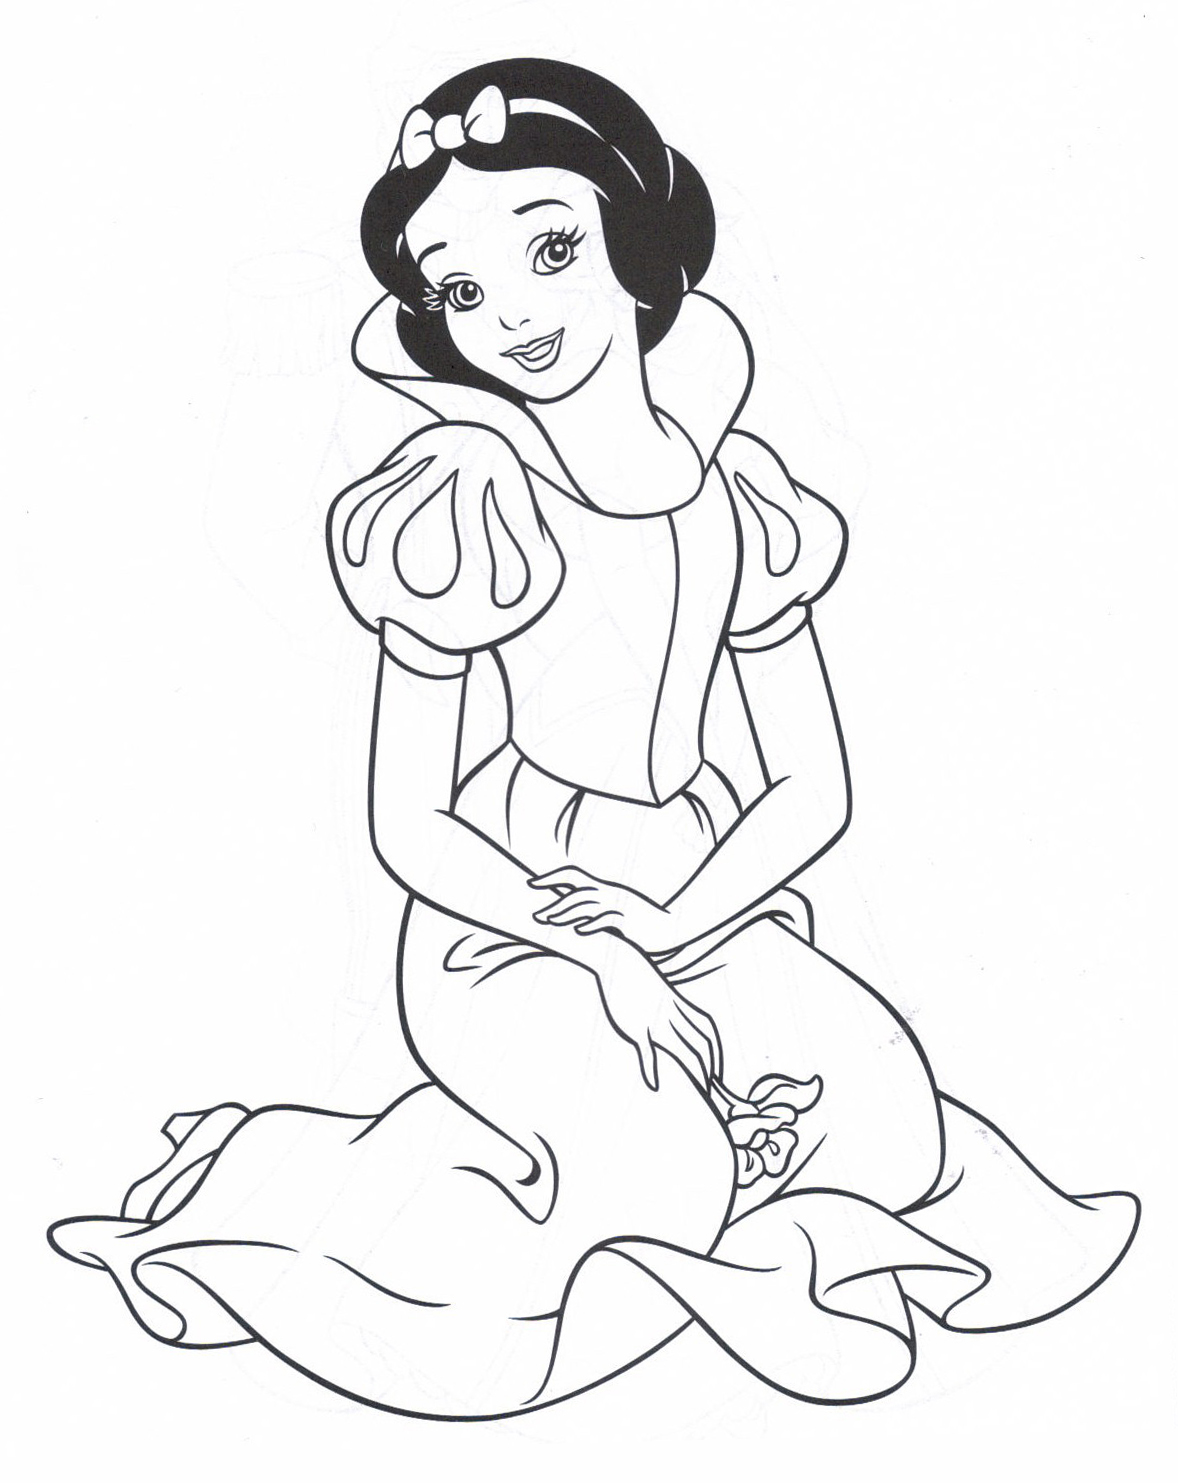 coloring pages of snow whitw - photo#20